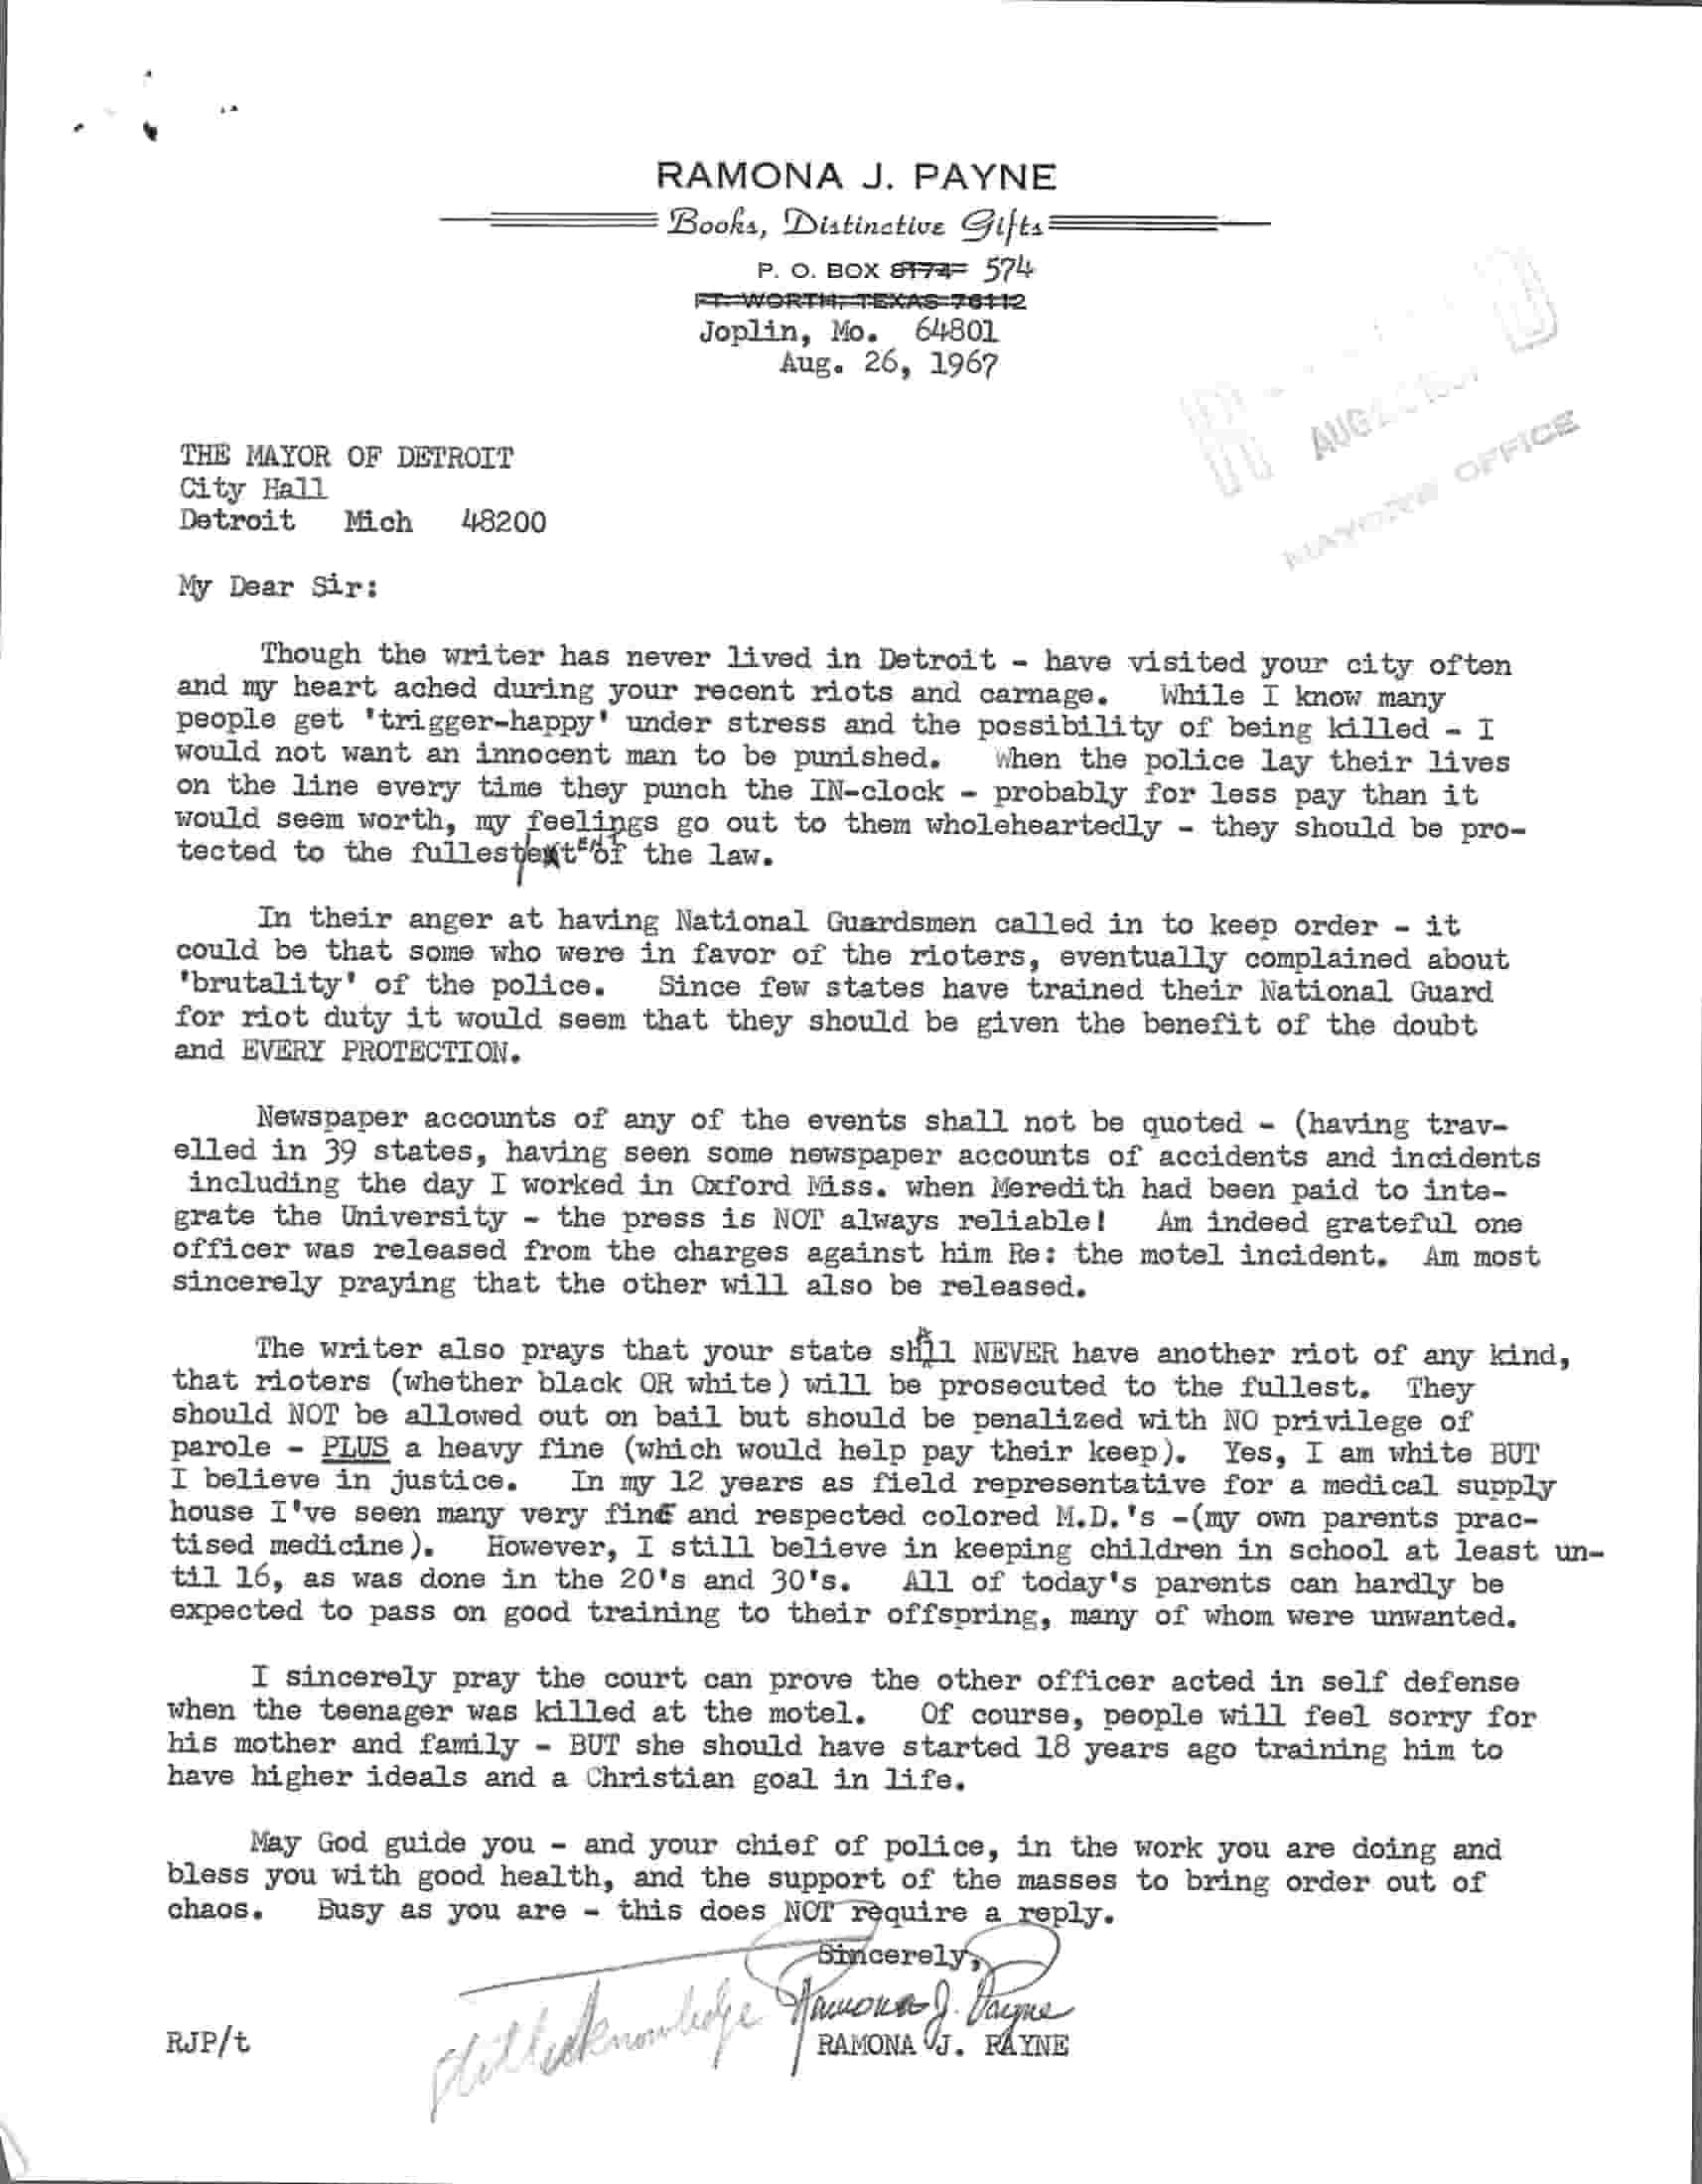 Letter from Ramona Payne to Jerome Cavanagh, Aug 26, 1967